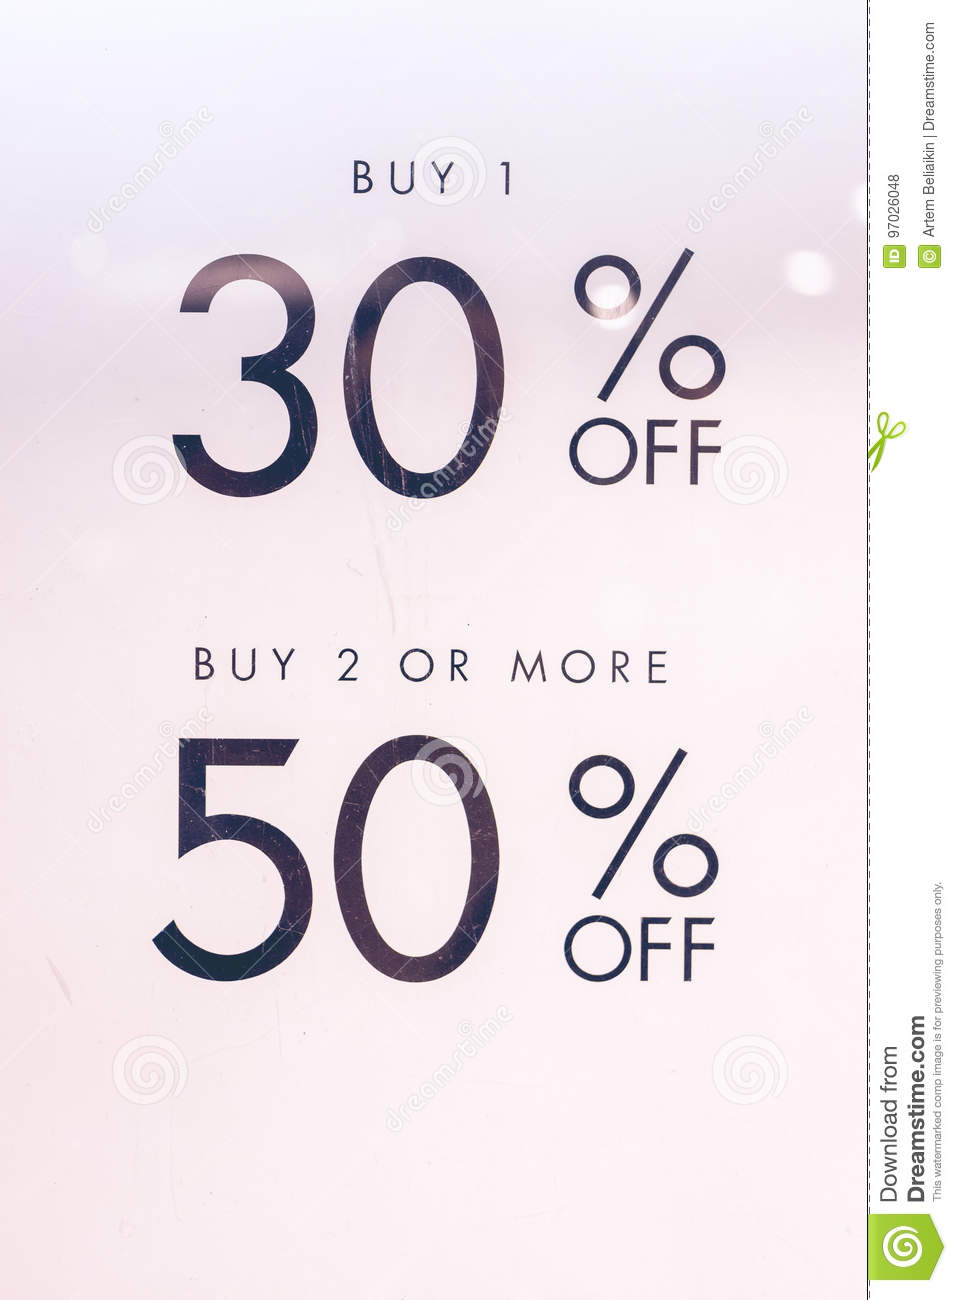 Text Sale 30 And 50 Off On The White Paper In The Shopping